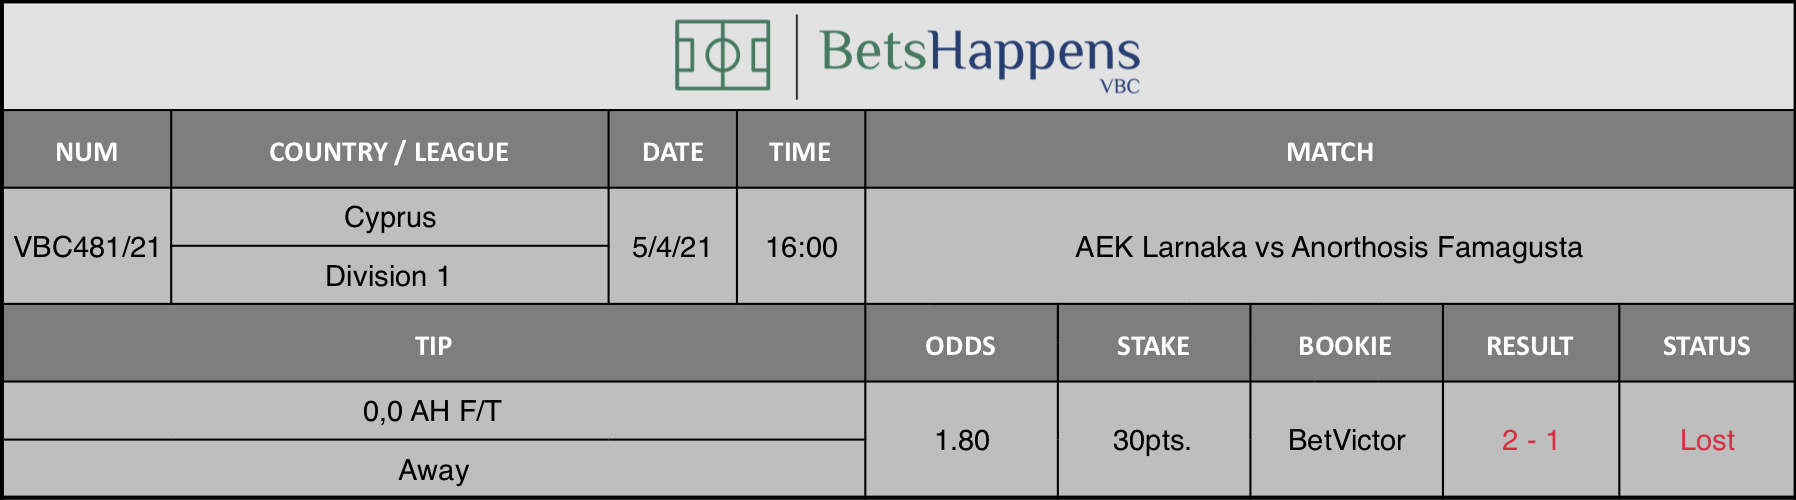 Results of our tip for the AEK Larnaka vs Anorthosis Famagusta match where 0,0 AH F/T  Away is recommended.